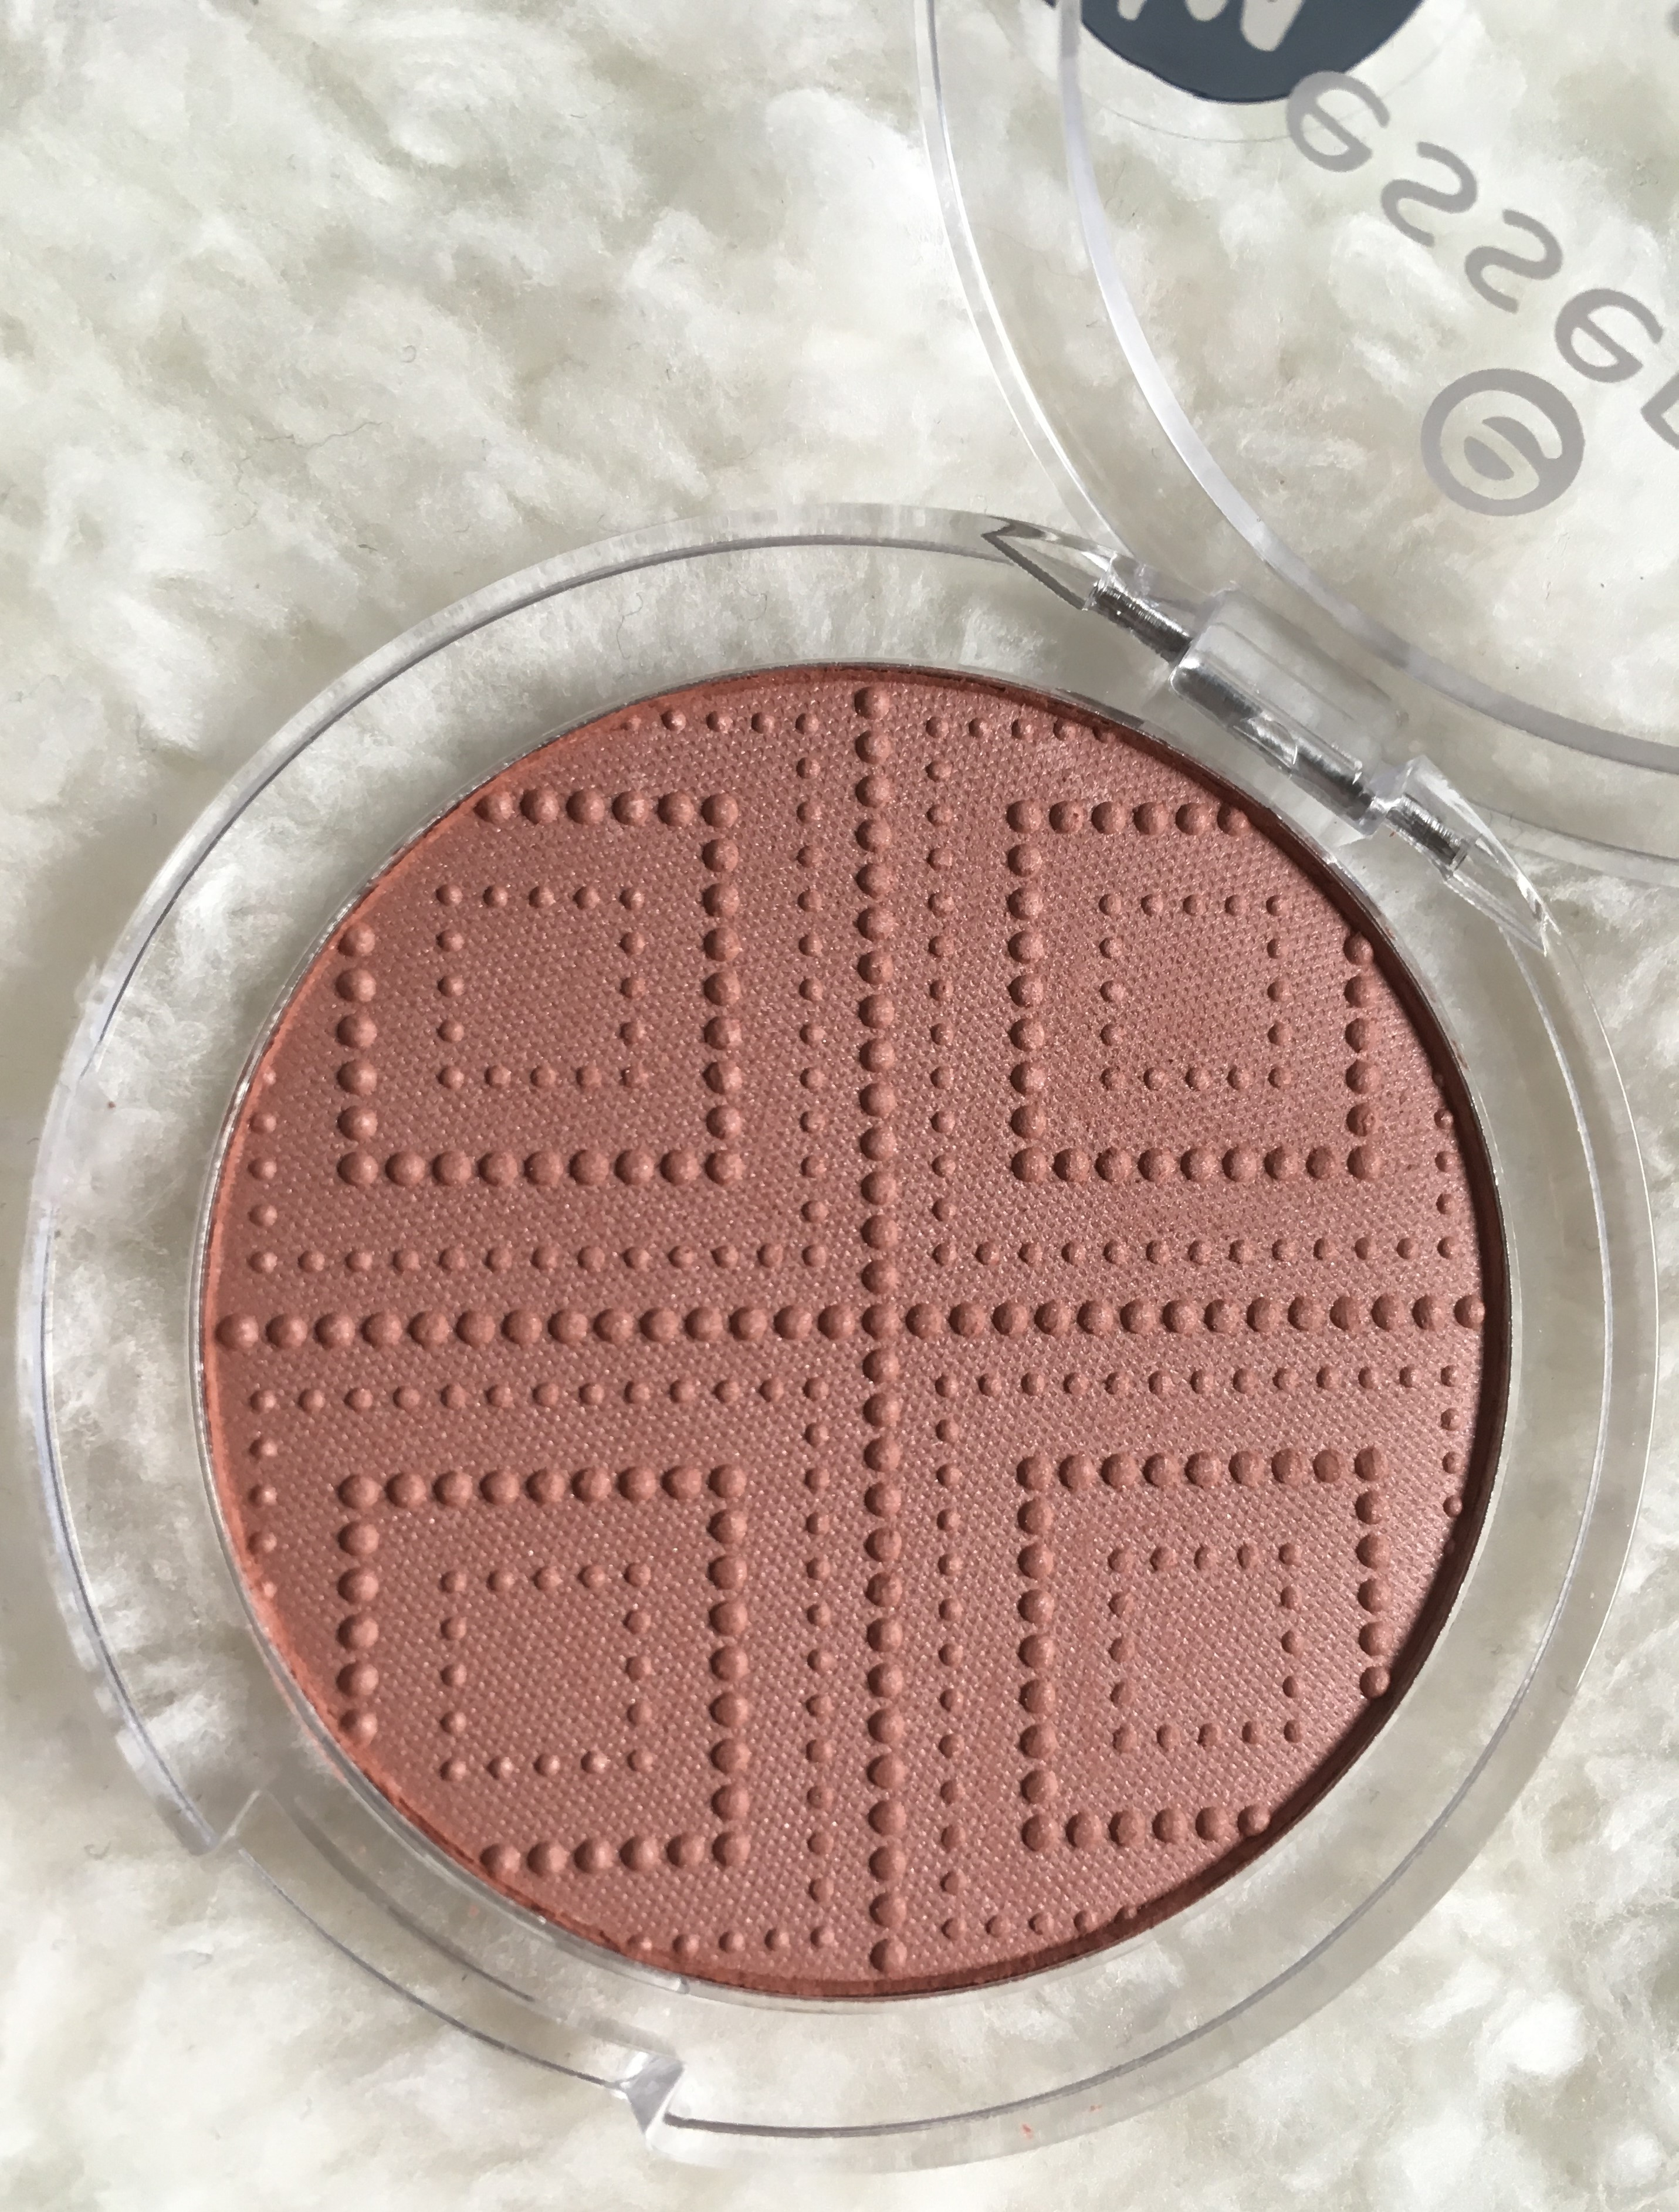 1-essence-satin-touch-blush-review-365-beauty-tips